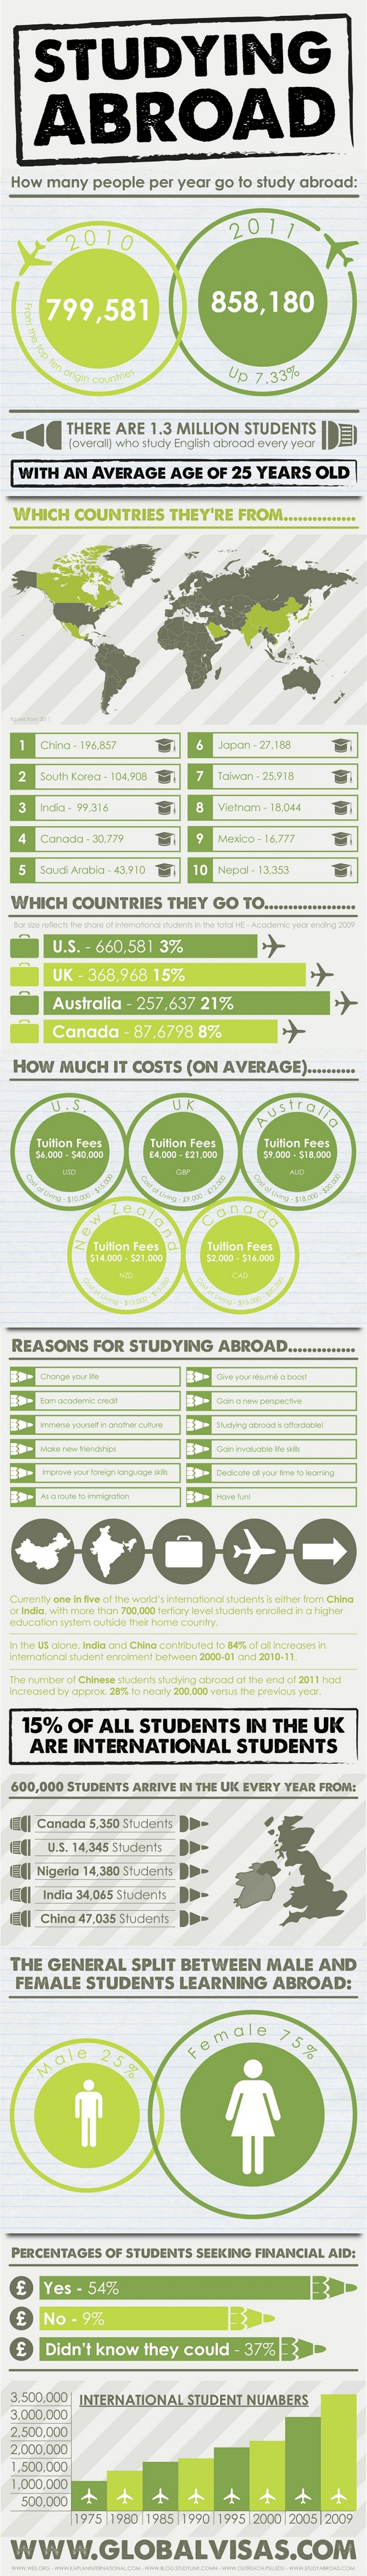 The Best States, Colleges, and Programs for Studying Abroad